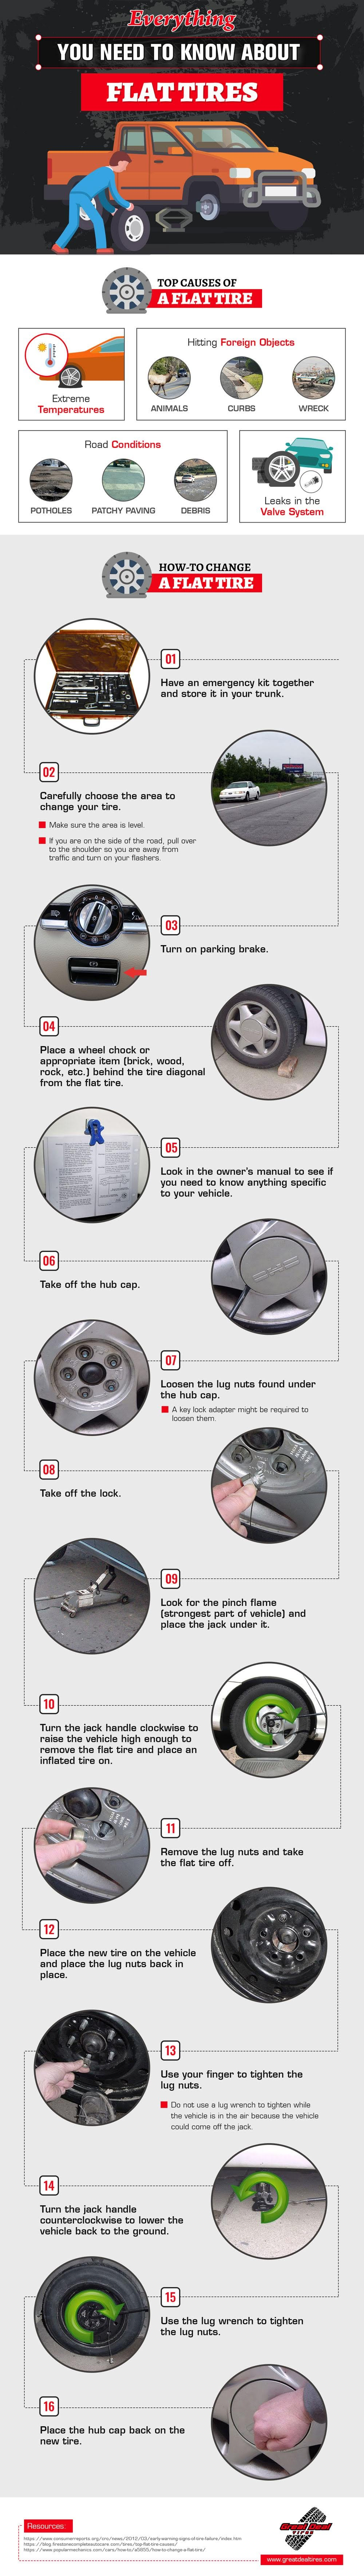 Everything You Need to Know About Flat Tires